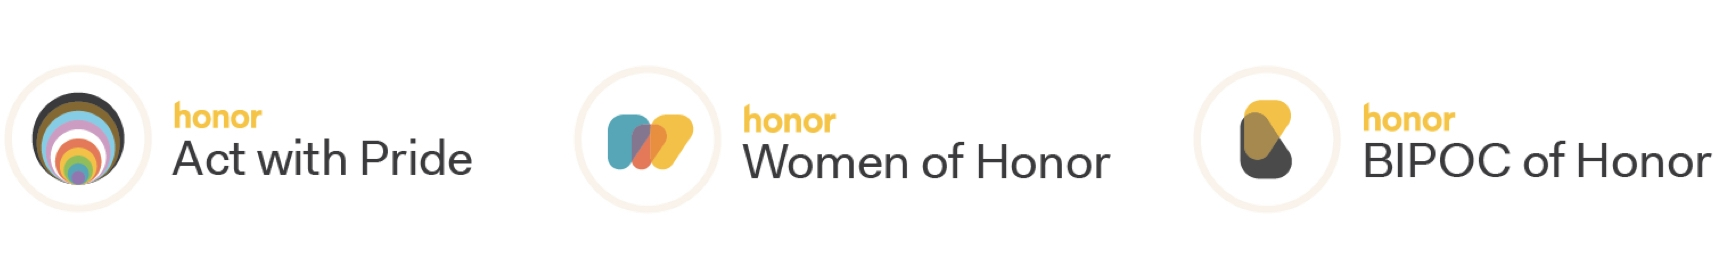 erg_icons_act_with_pride_honor_women_honor_bipoc